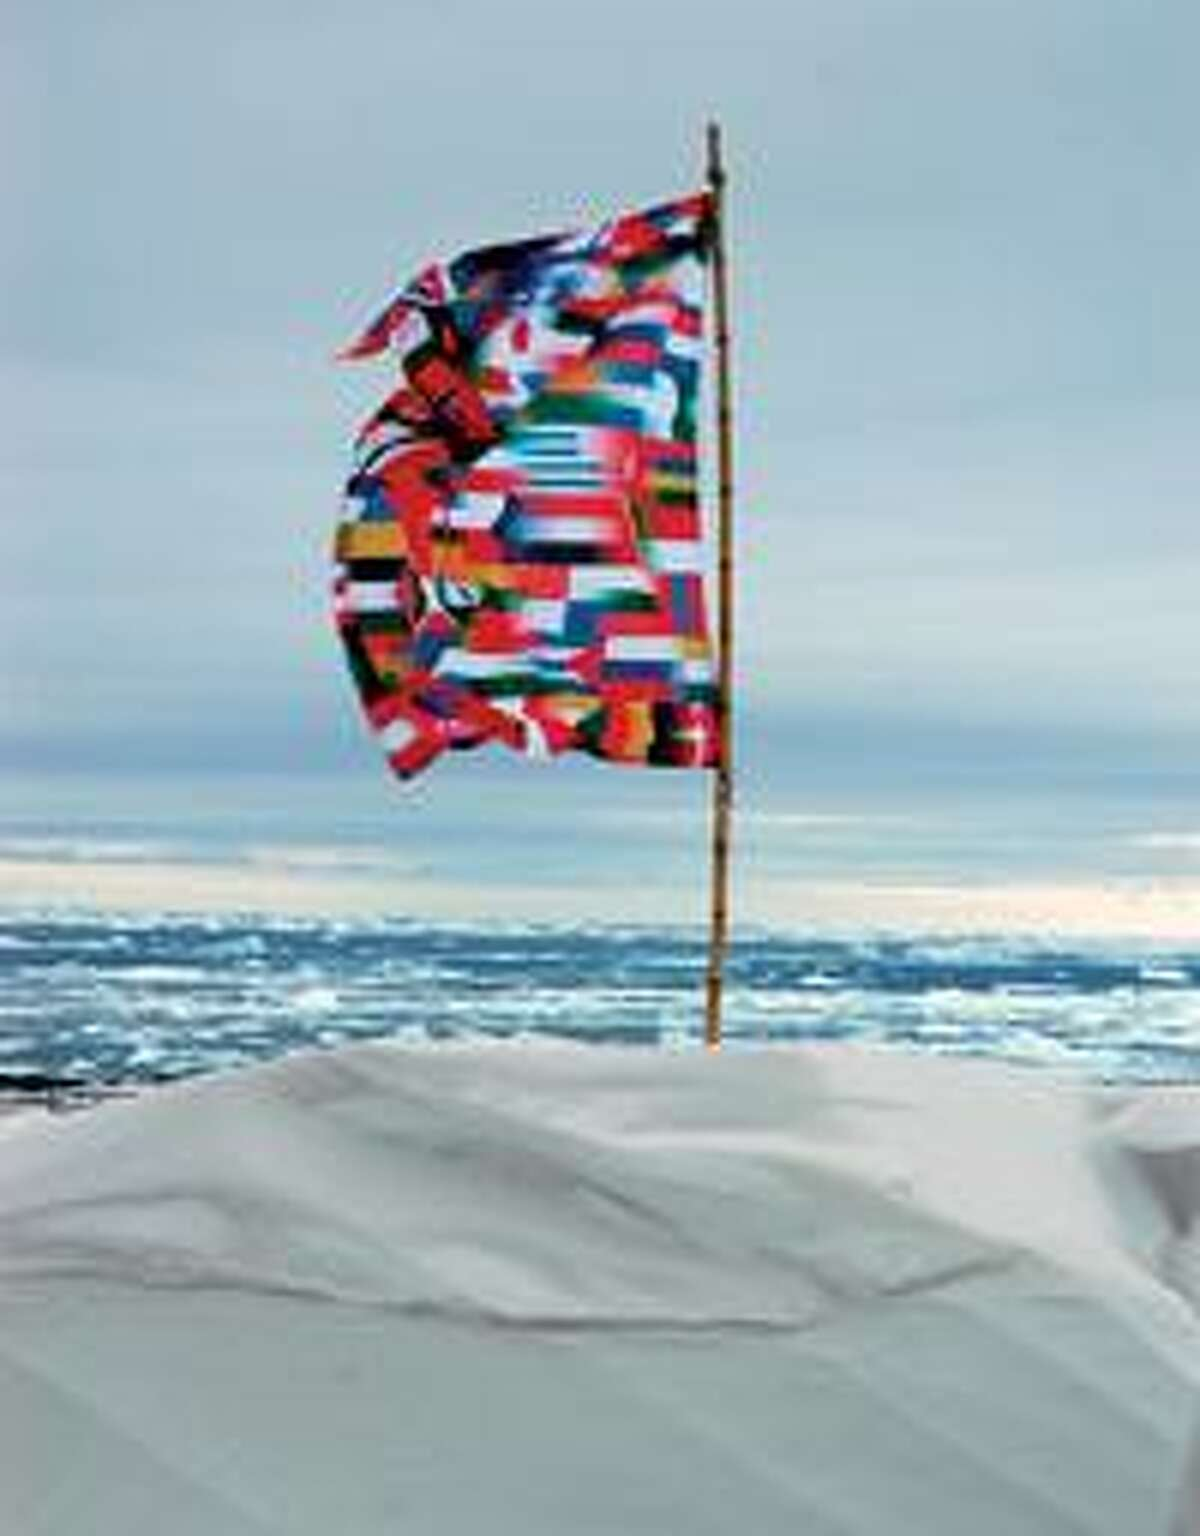 Lucy+Jorge Orta, Antarctic Village--No Borders, Metisse Flag, 2007, Installation on the Antarctic Peninsula, inkjet on polymide, eyelets, 39.5 x 59 inches, edition of 7 (photo: Thierry Bal)